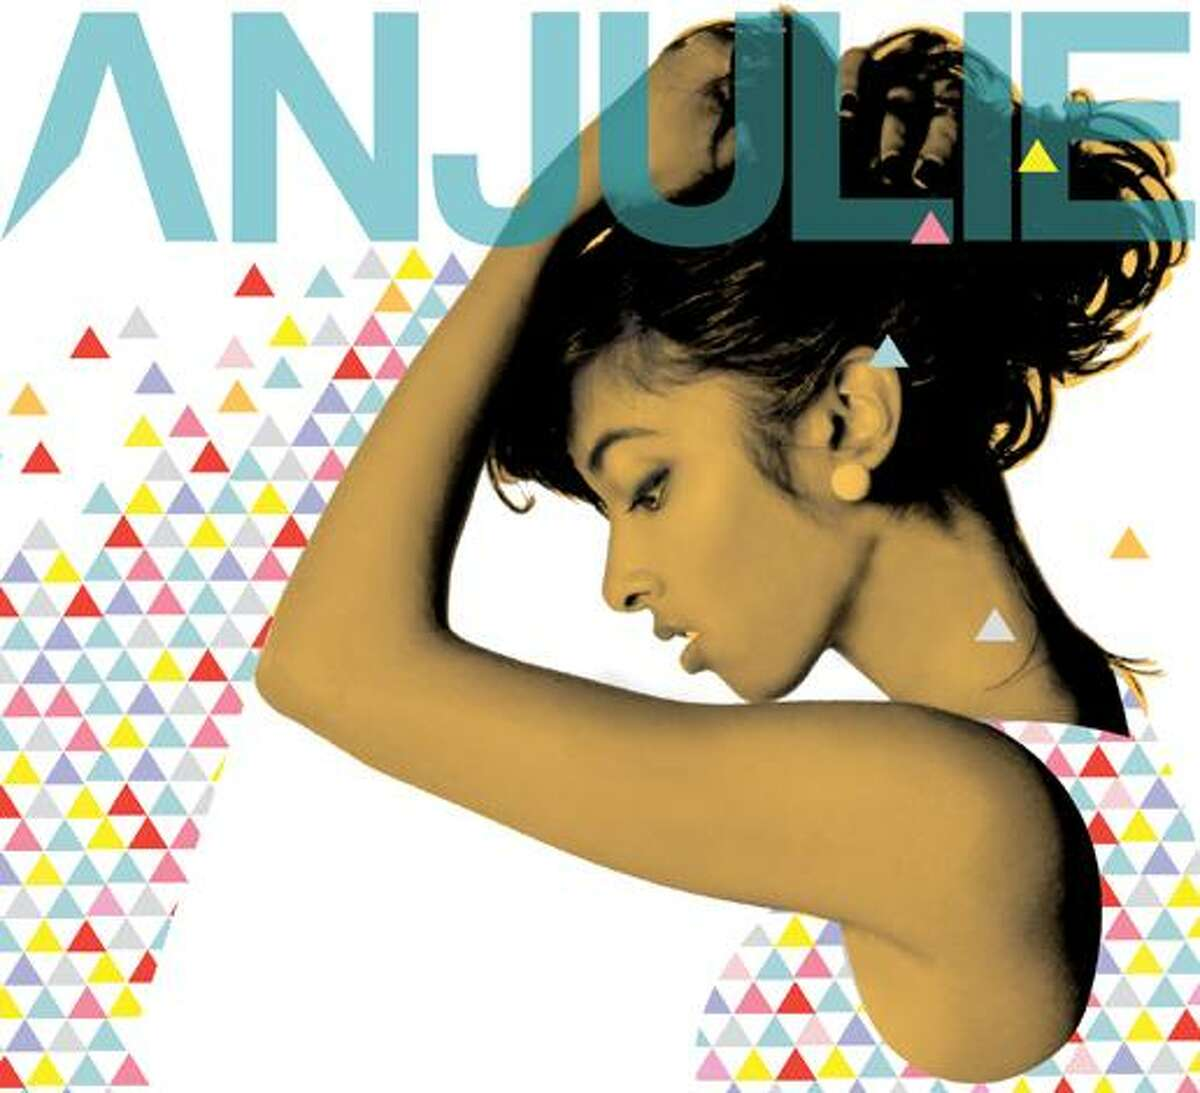 In this CD cover image released by Hear Music/Monster Music, the self-titled debut CD by Anjulie is shown. (AP Photo/Hear Music/Monster Music) ** NO SALES **